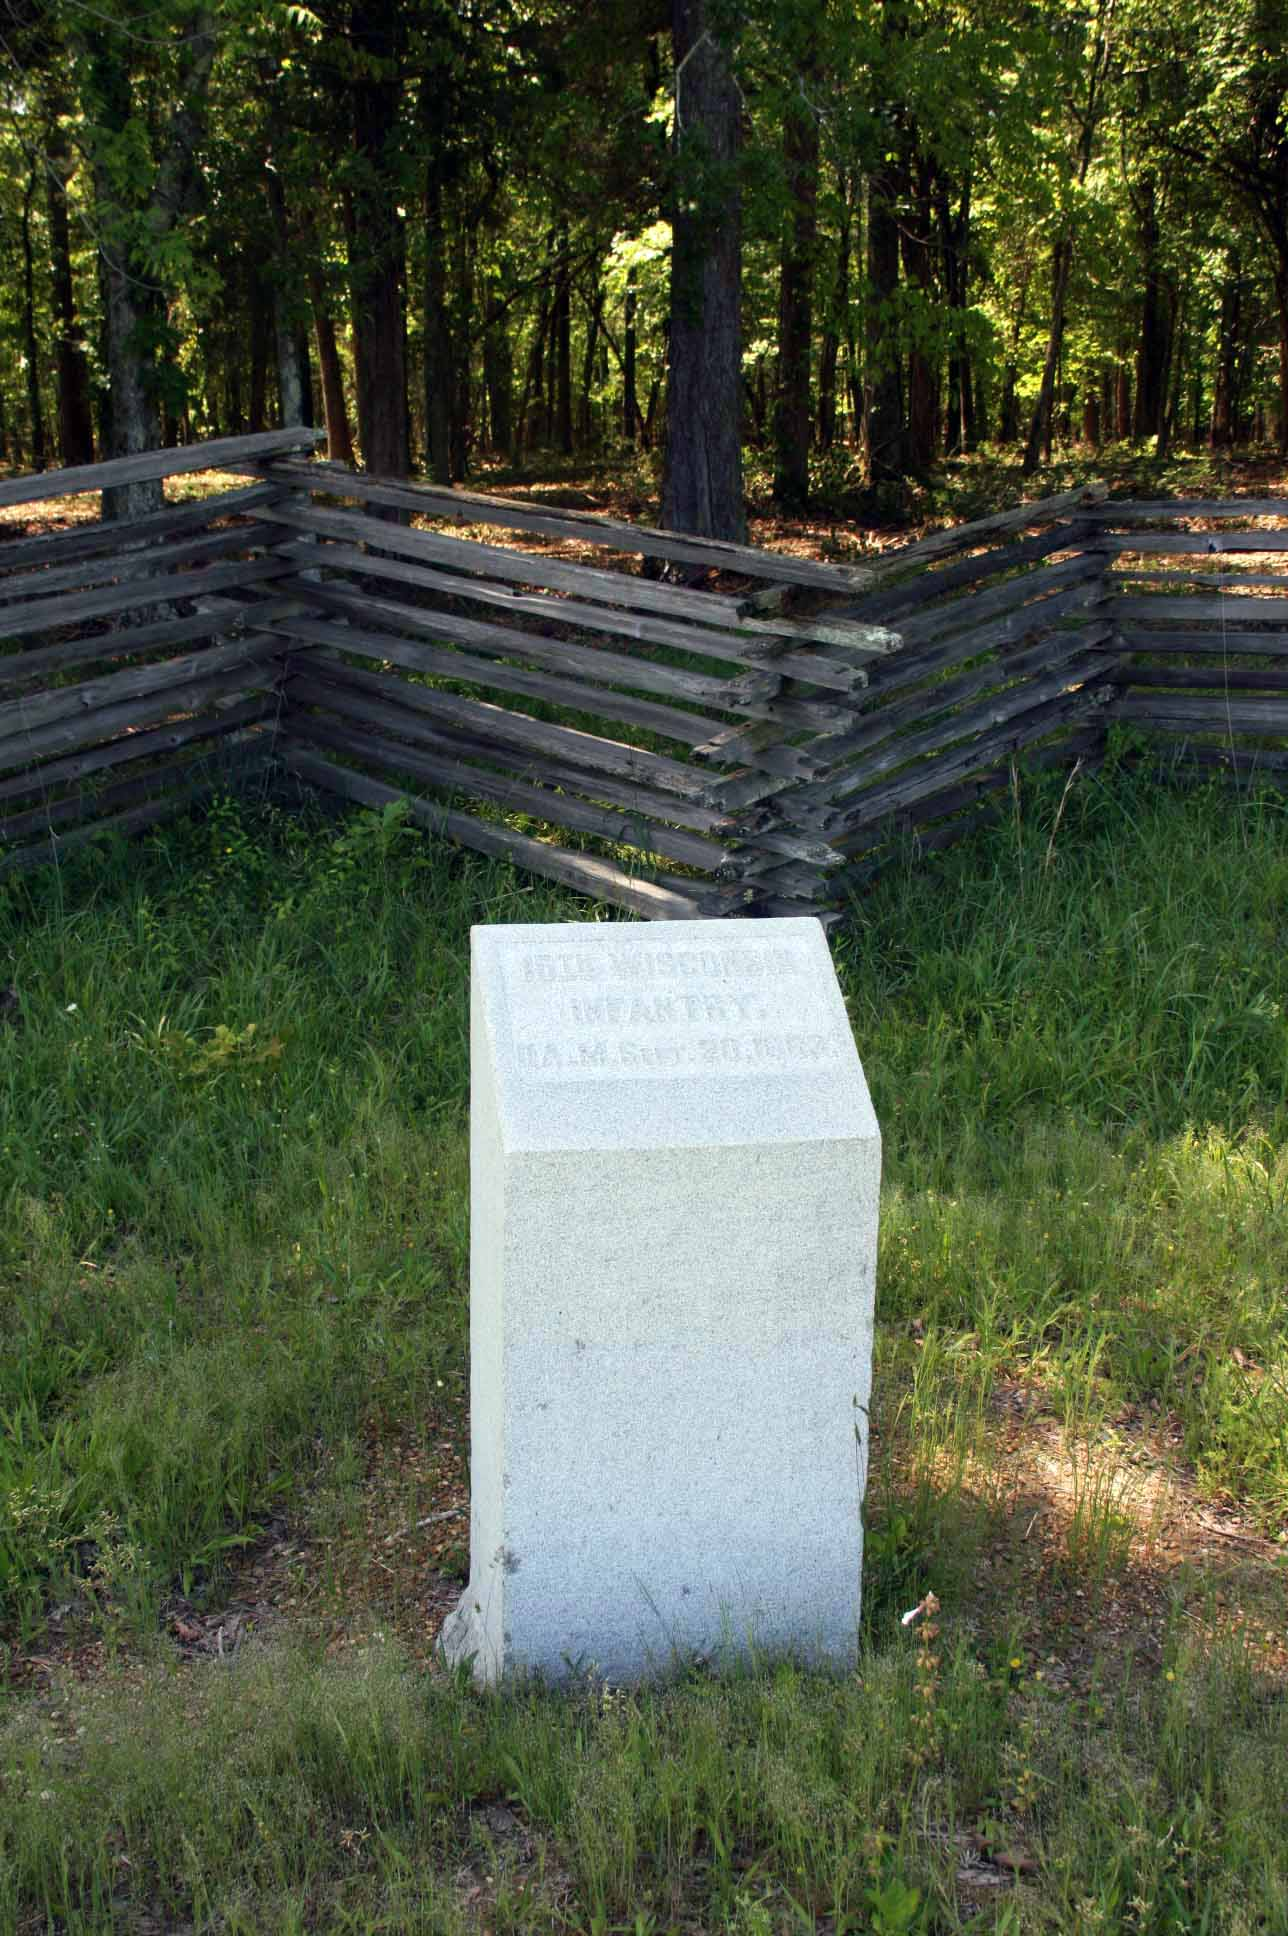 15th Wisconsin Infantry Marker, click photo to enlarge.